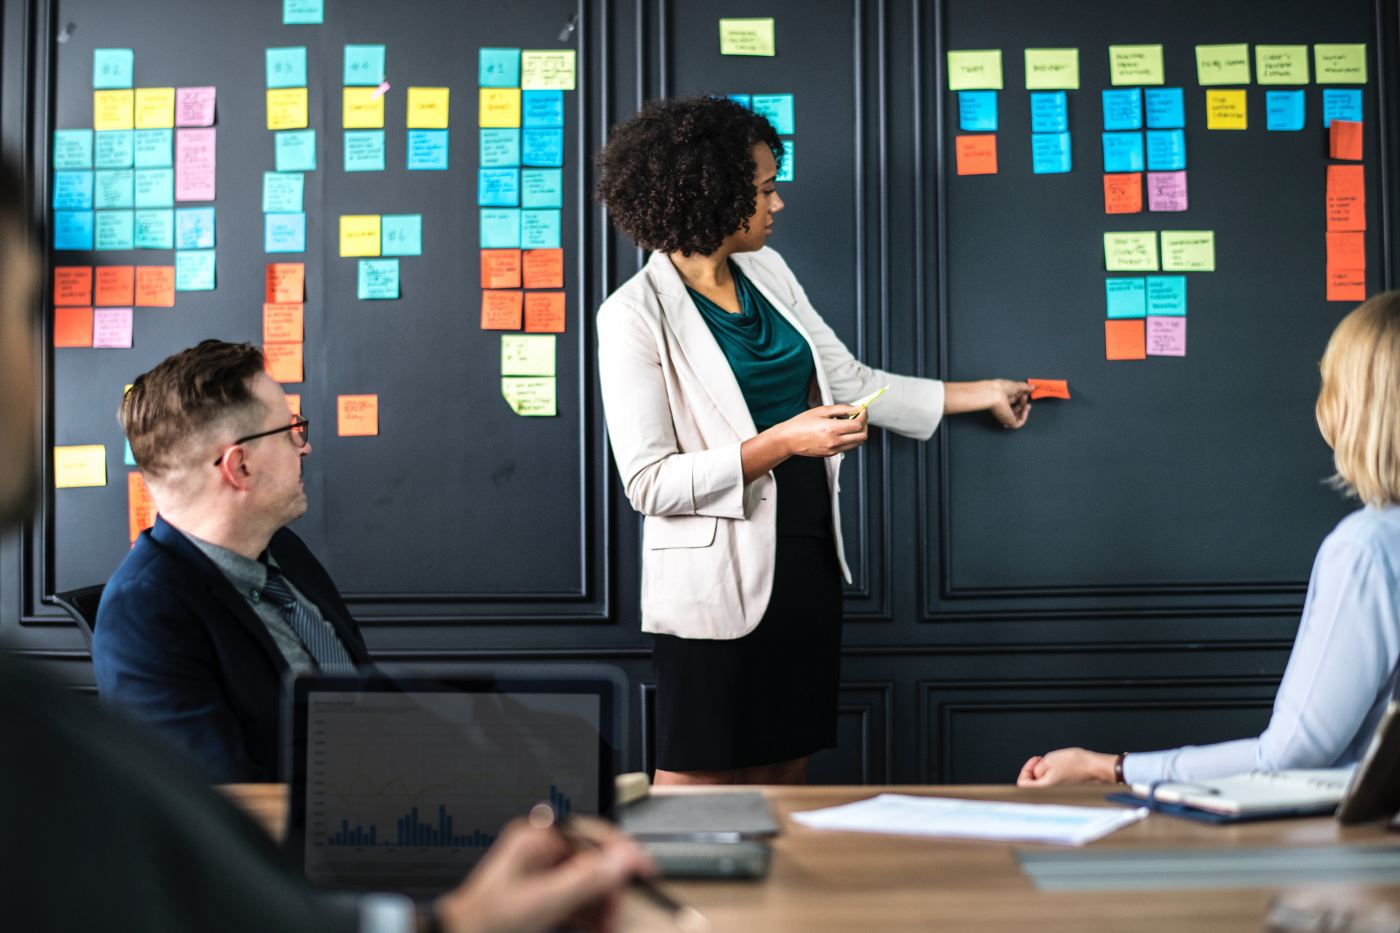 A women sticking post it notes onto a black wall